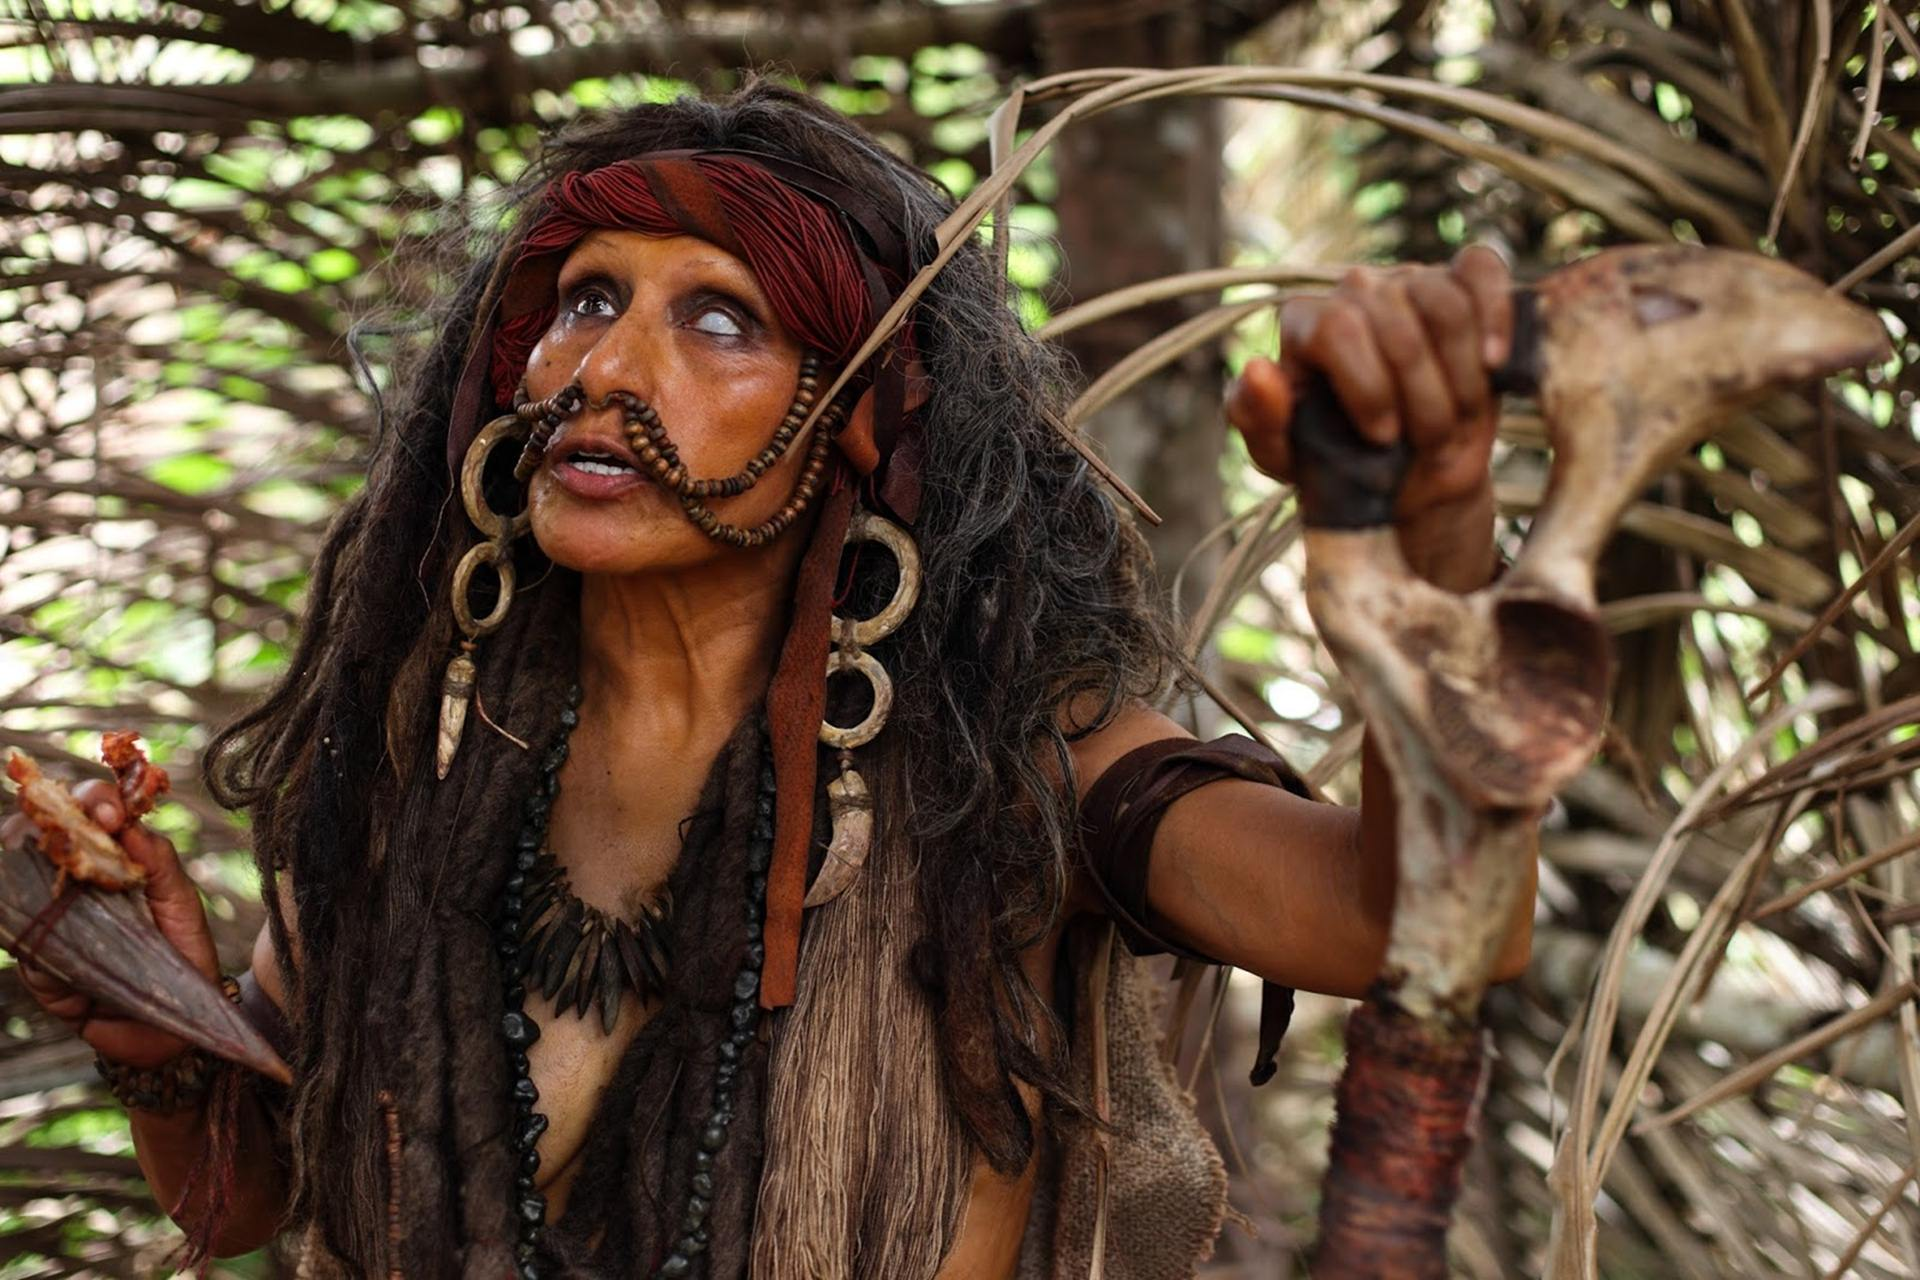 The-Green-Inferno-image-4